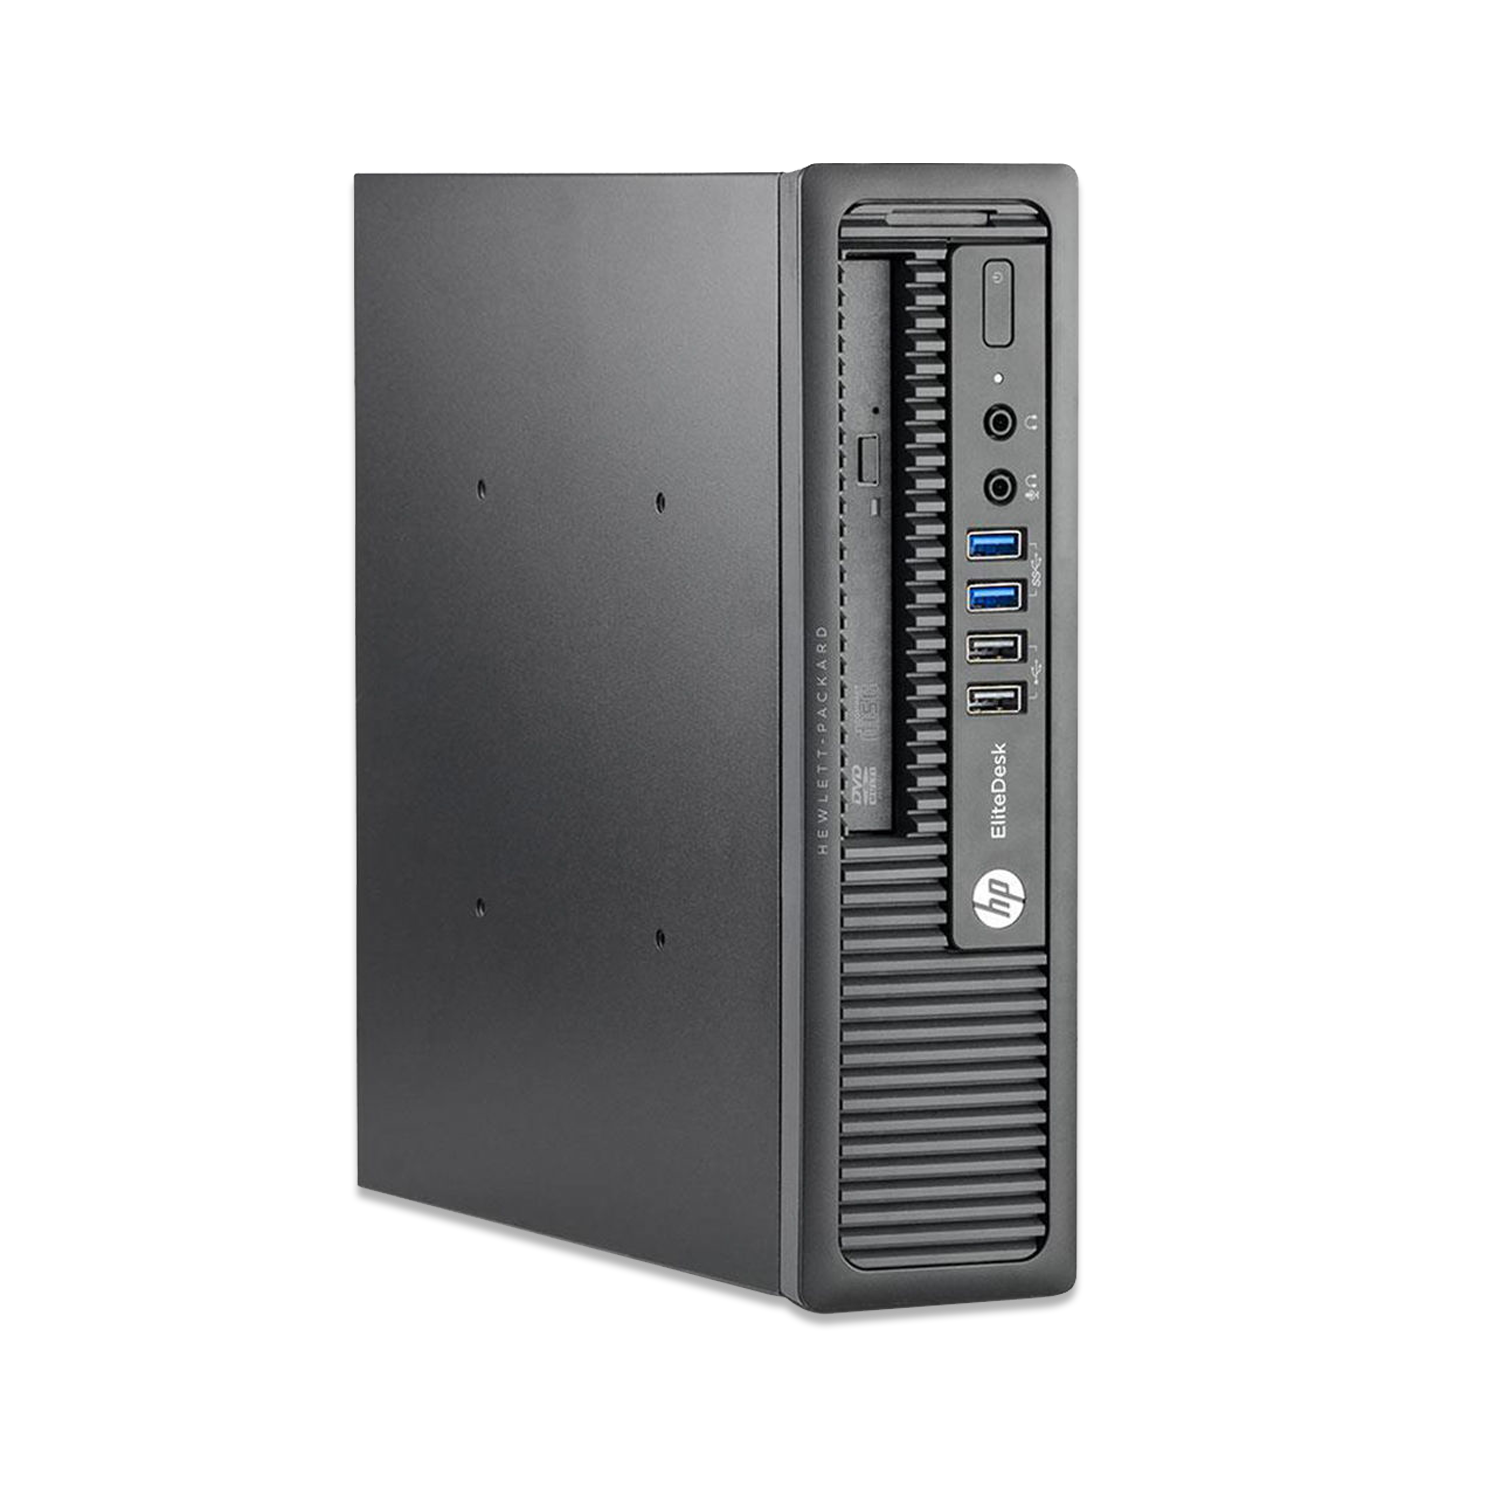 HP ProDesk 600 G1 SFF i3 4th Gen. 8GB RAM 128GB SSD Win 10